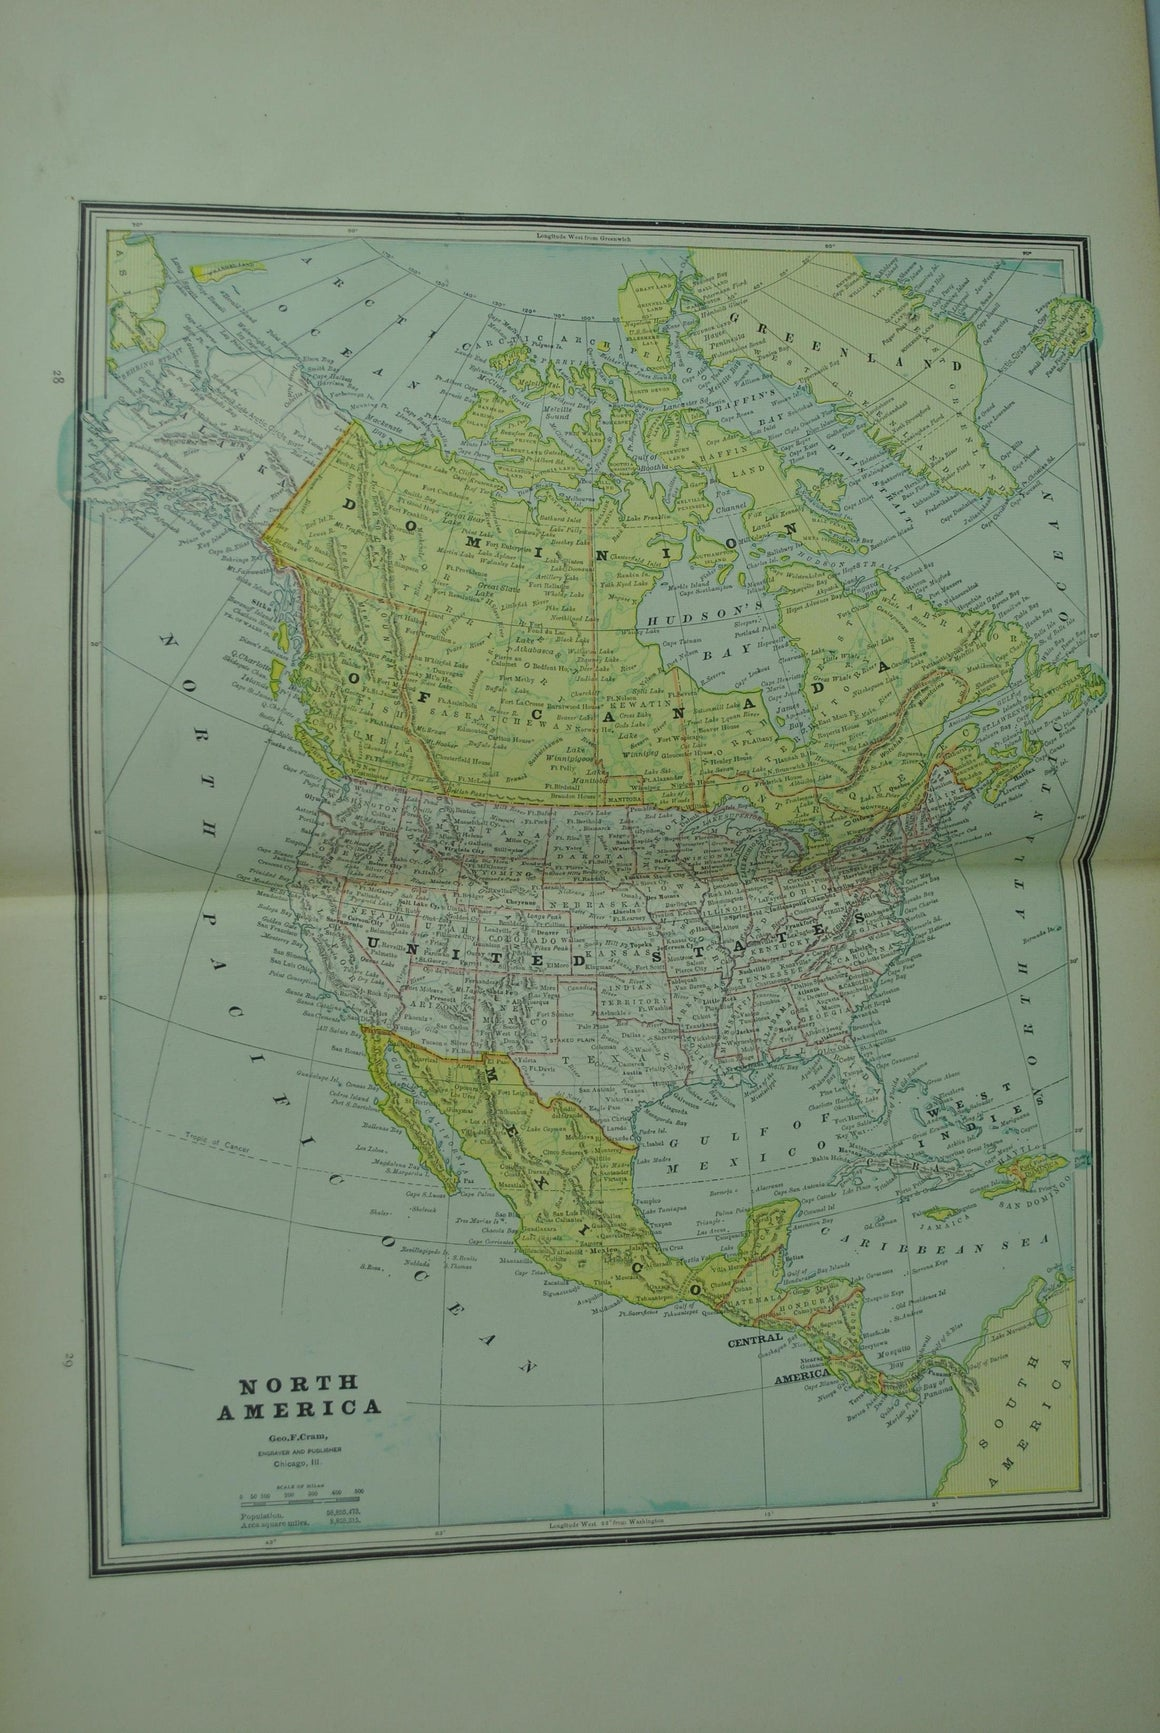 1887 North America - Cram